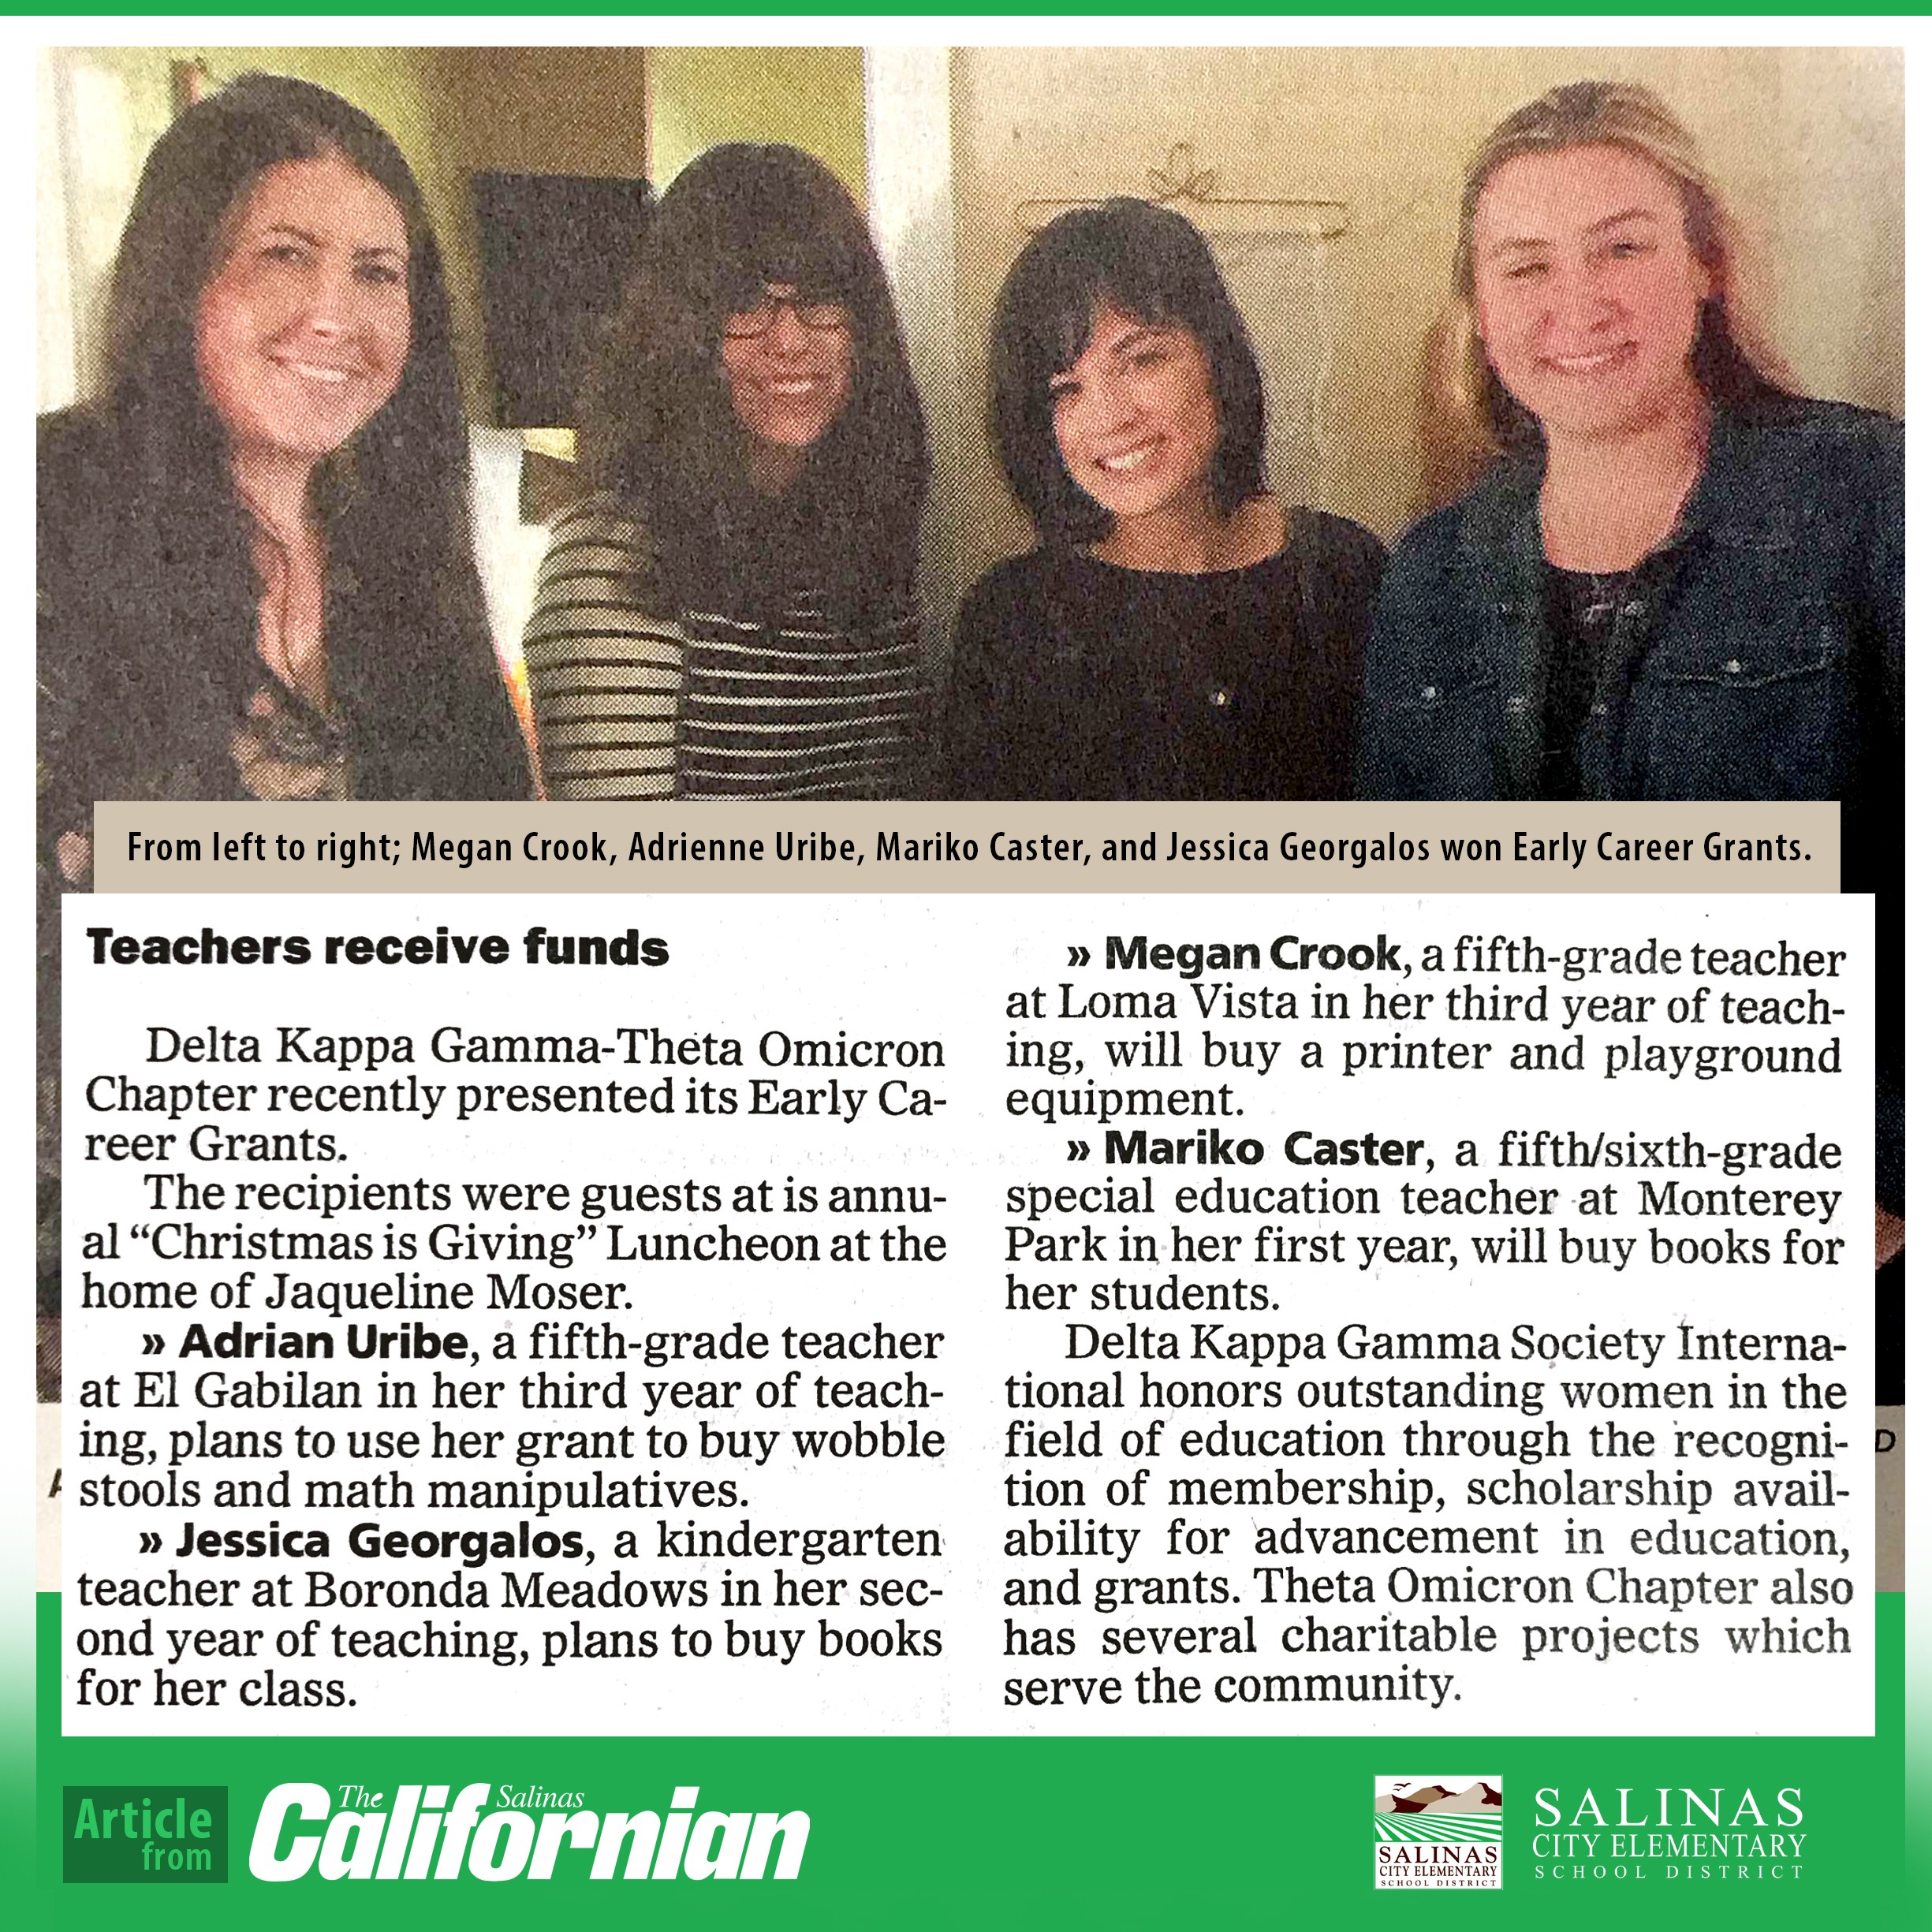 From left to right; Megan Crook, Adrienne Uribe, Mariko Caster, and Jessica Georgalos won Early Career Grants.